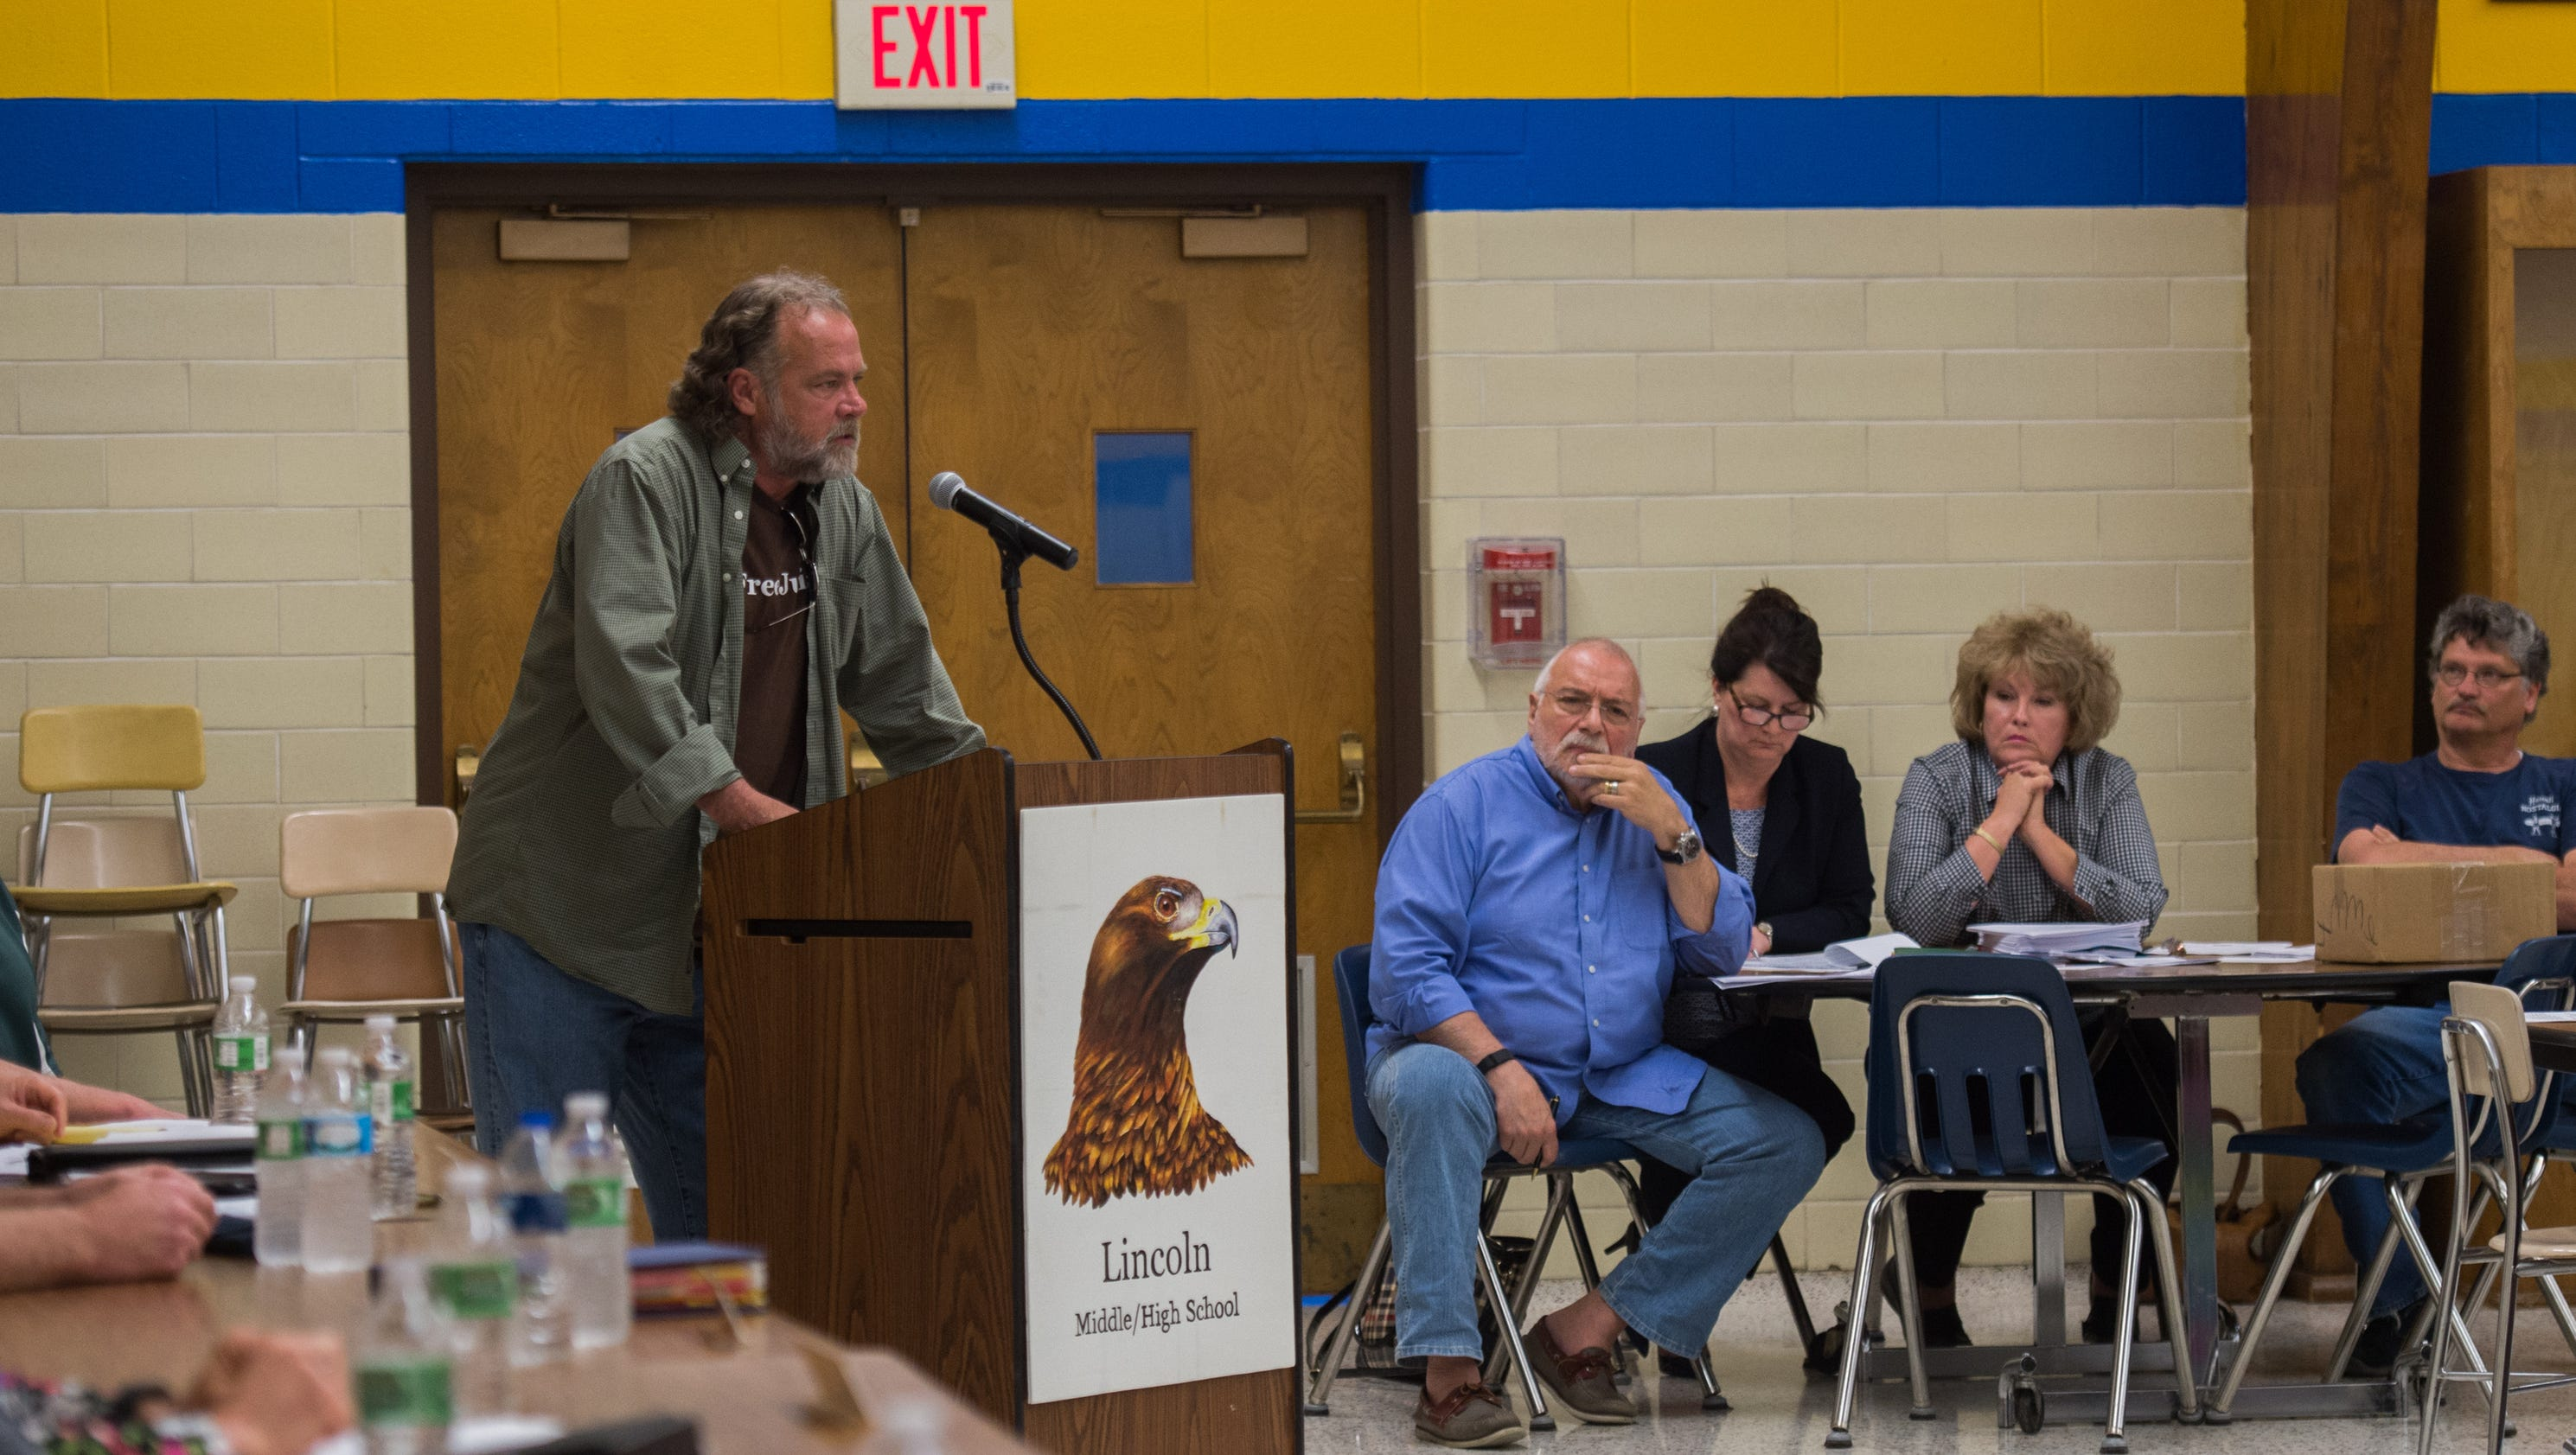 Public Voices Opinions About Western Wayne Sewer Issues